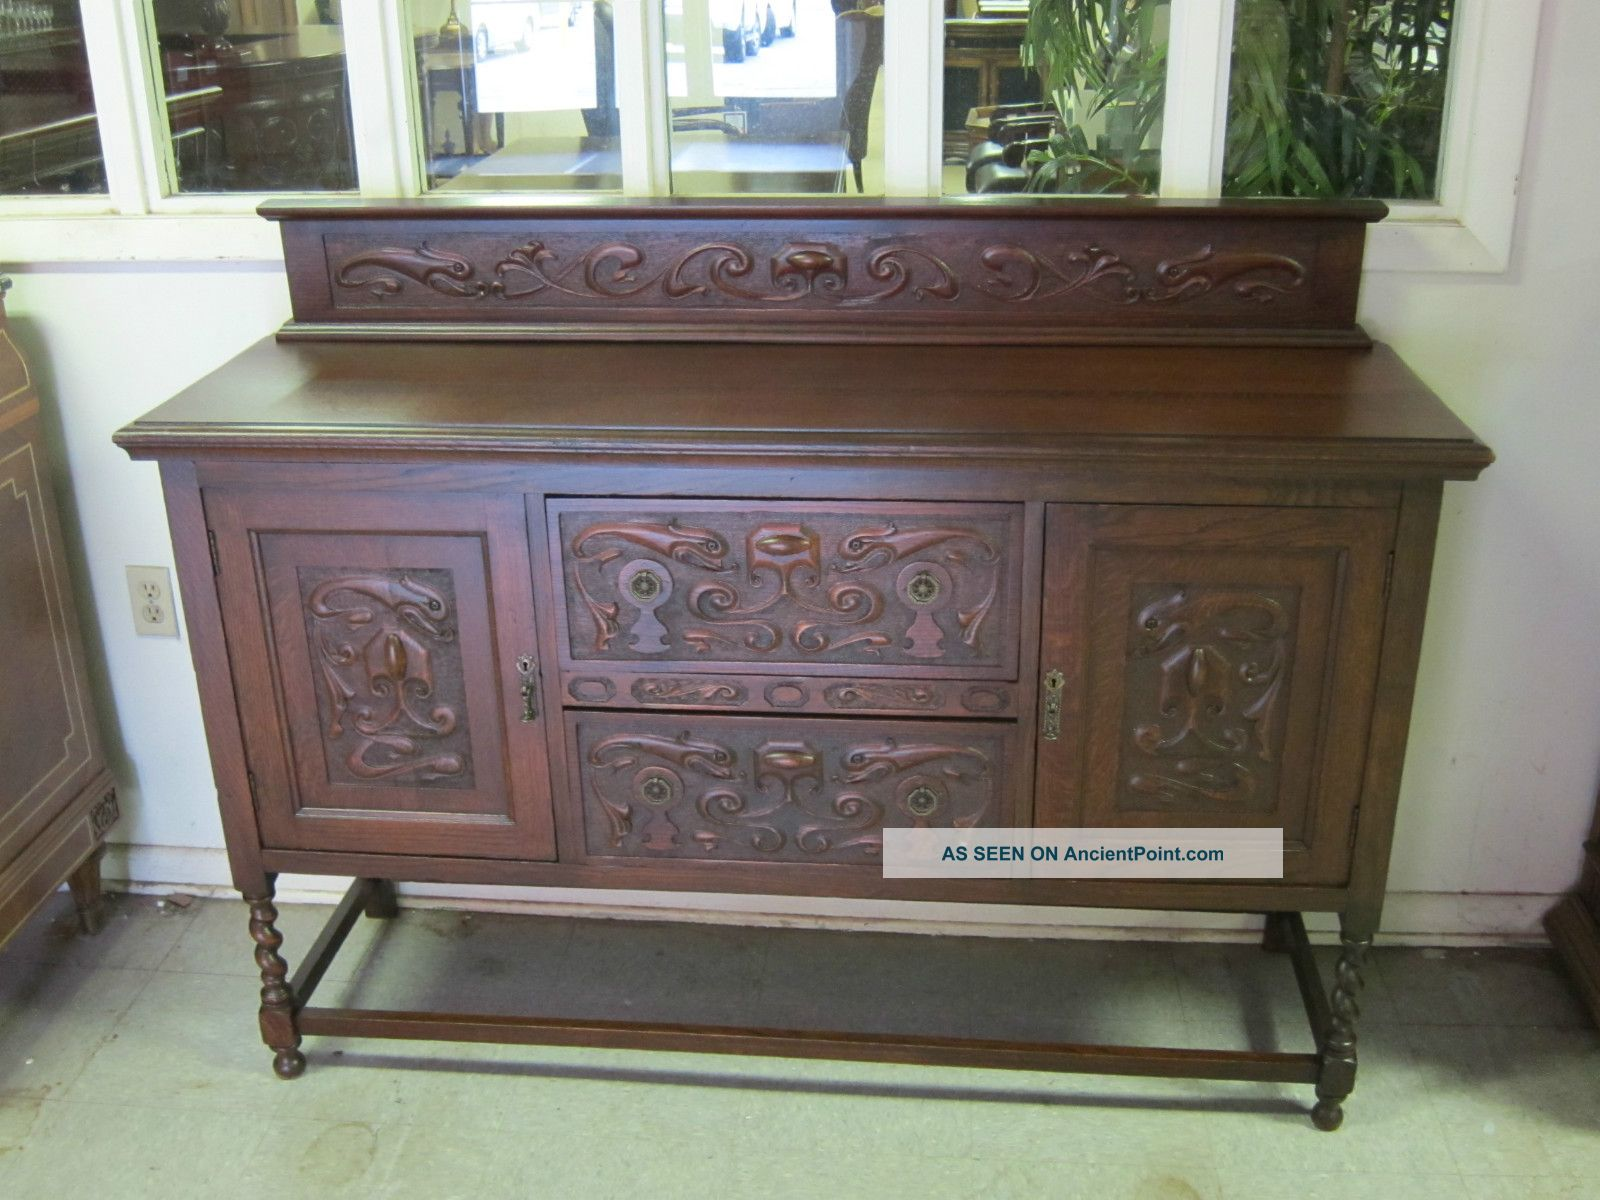 Antique English Tiger Oak Barley Twist Sideboard Carved Accents 1900-1950 photo